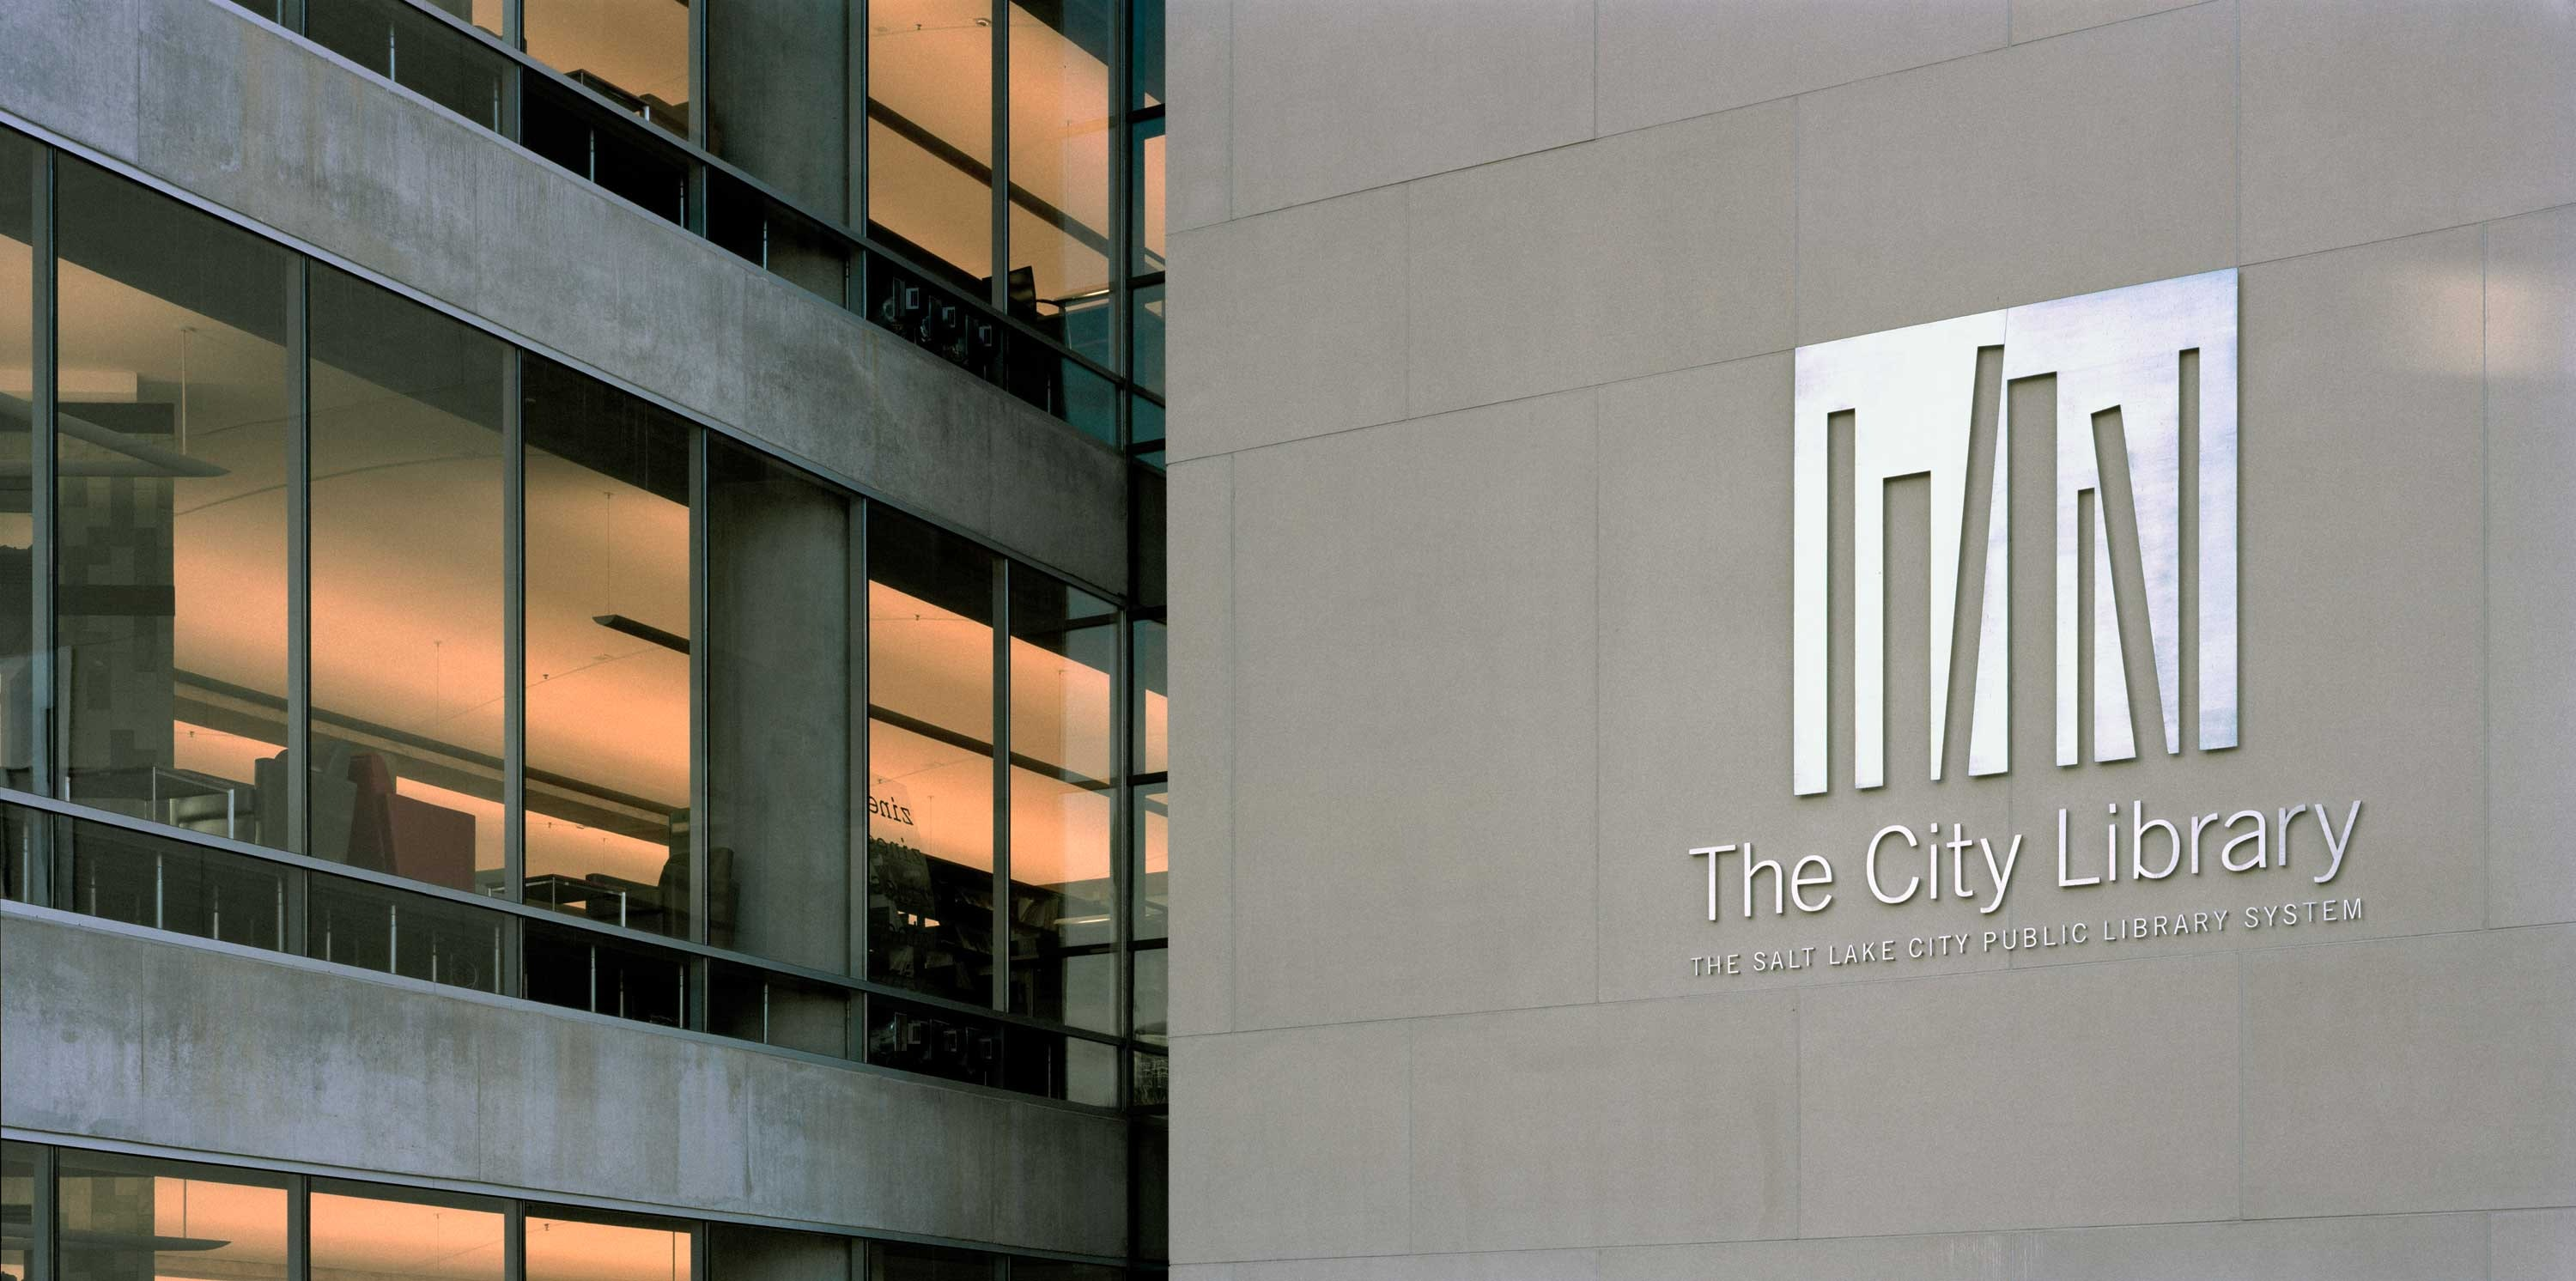 Good Identity, Signage Program, And Website Design For The Cityu0027s Main Library  Building.